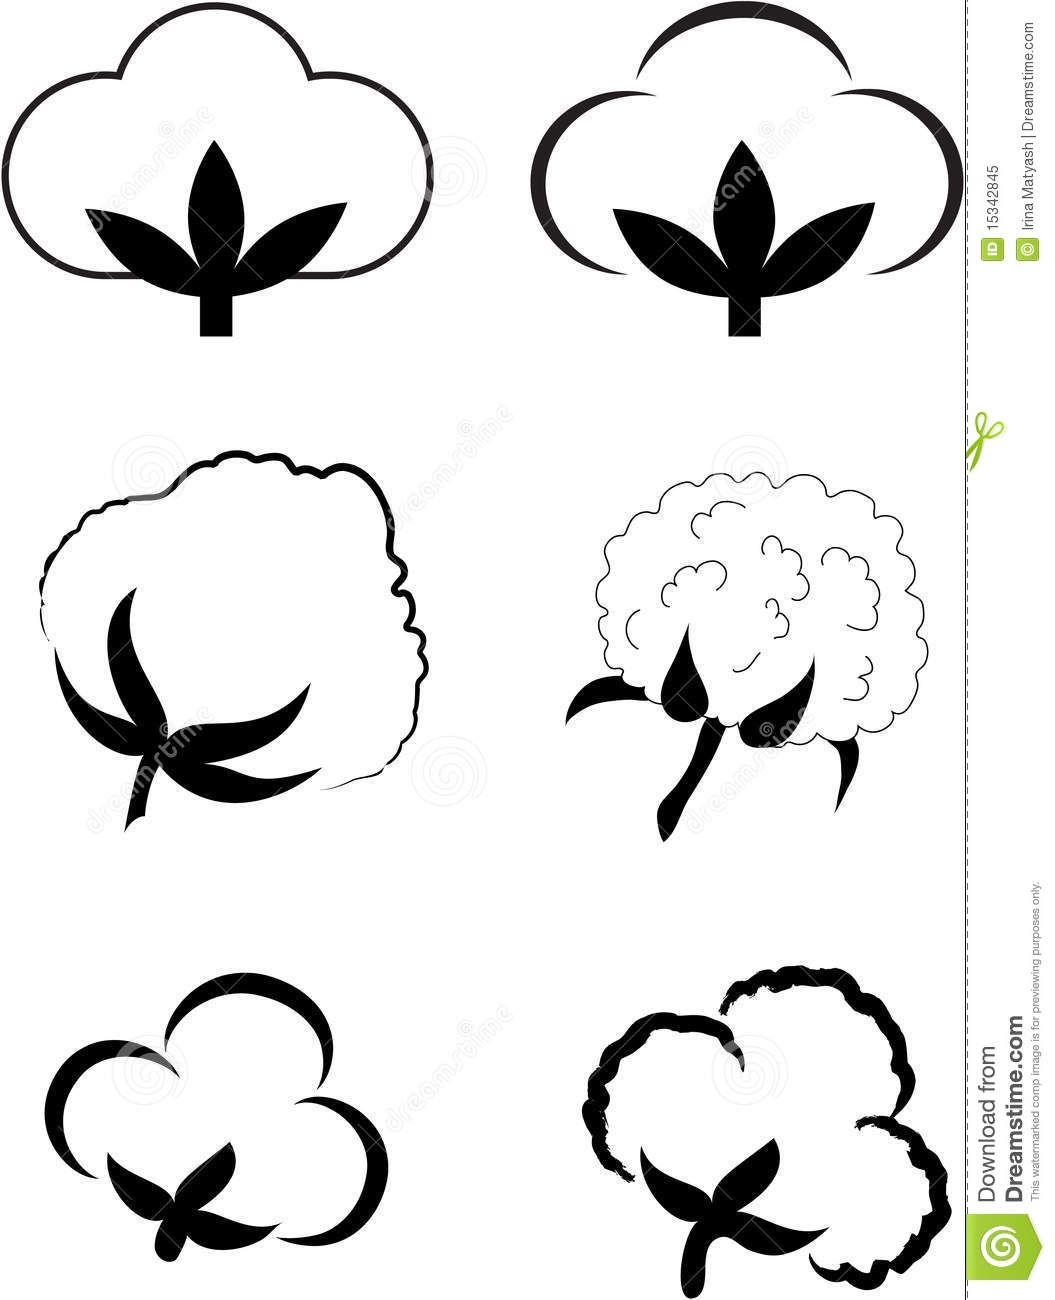 Picking cotton plant black and white clipart clipart royalty free download cotton plant images | Cotton (Gossypium). Royalty Free Stock ... clipart royalty free download